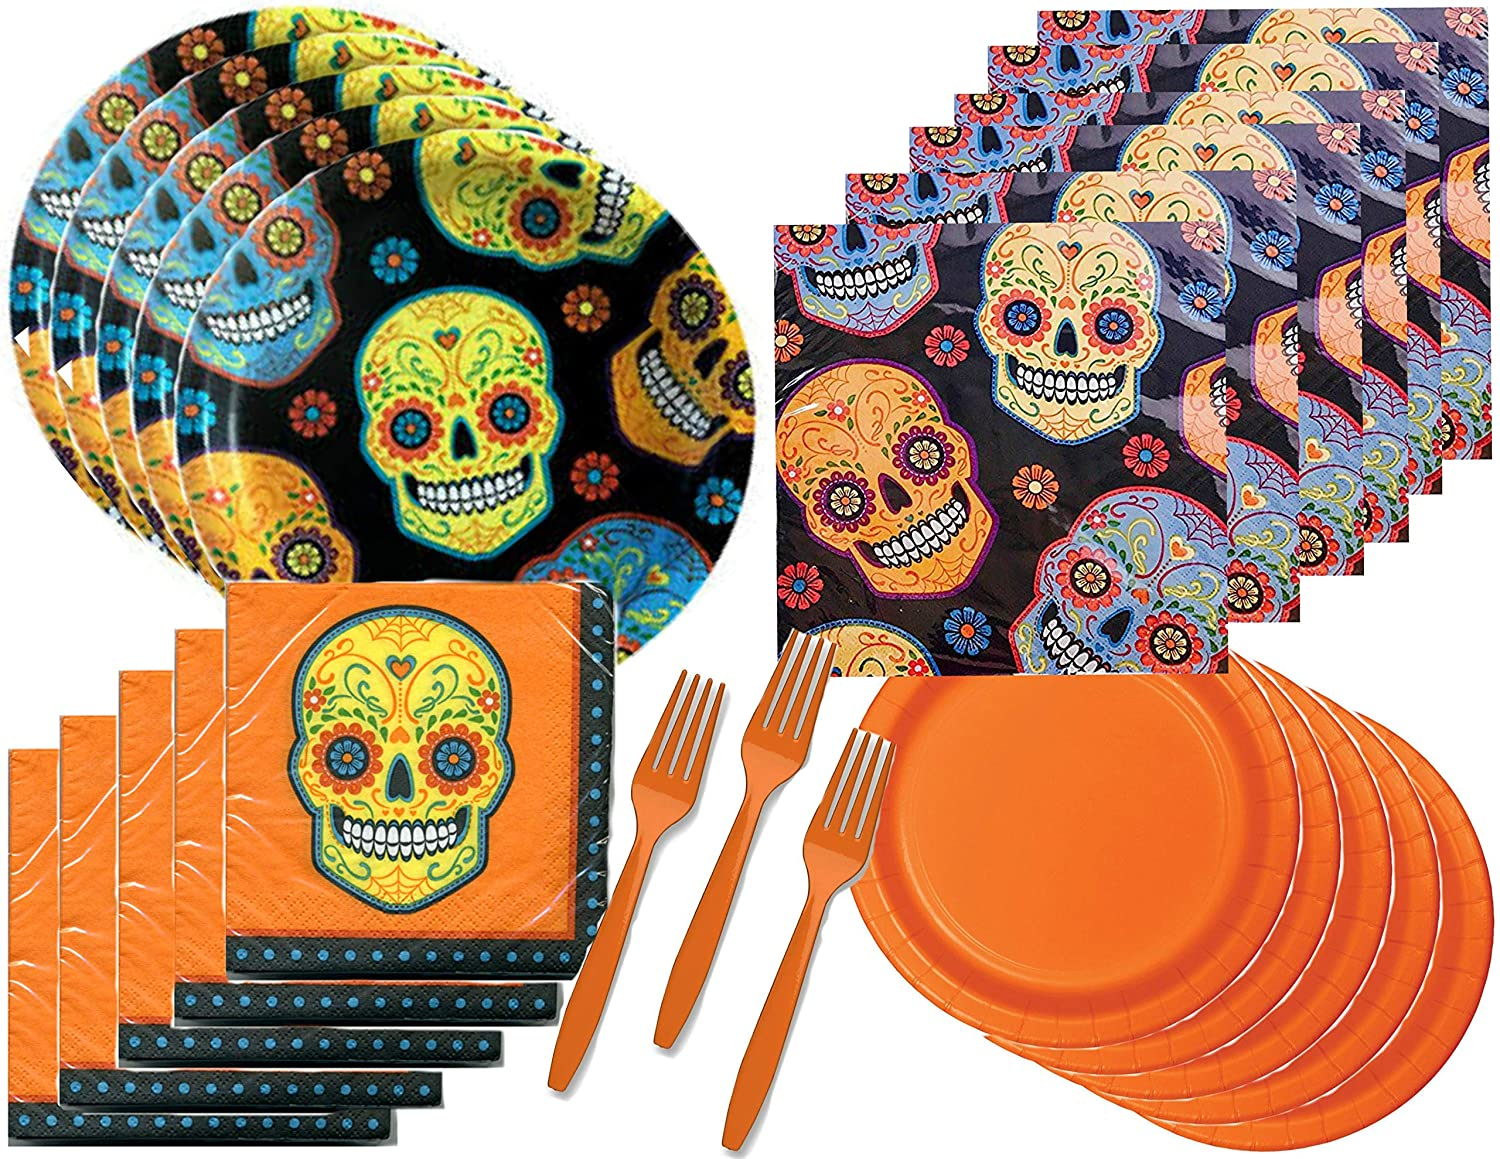 Sugar Skull Day of The Dead Halloween Party Supply Bundle for 48 Guests - Includes Plates, Napkins and Forks, 240 Pieces Total